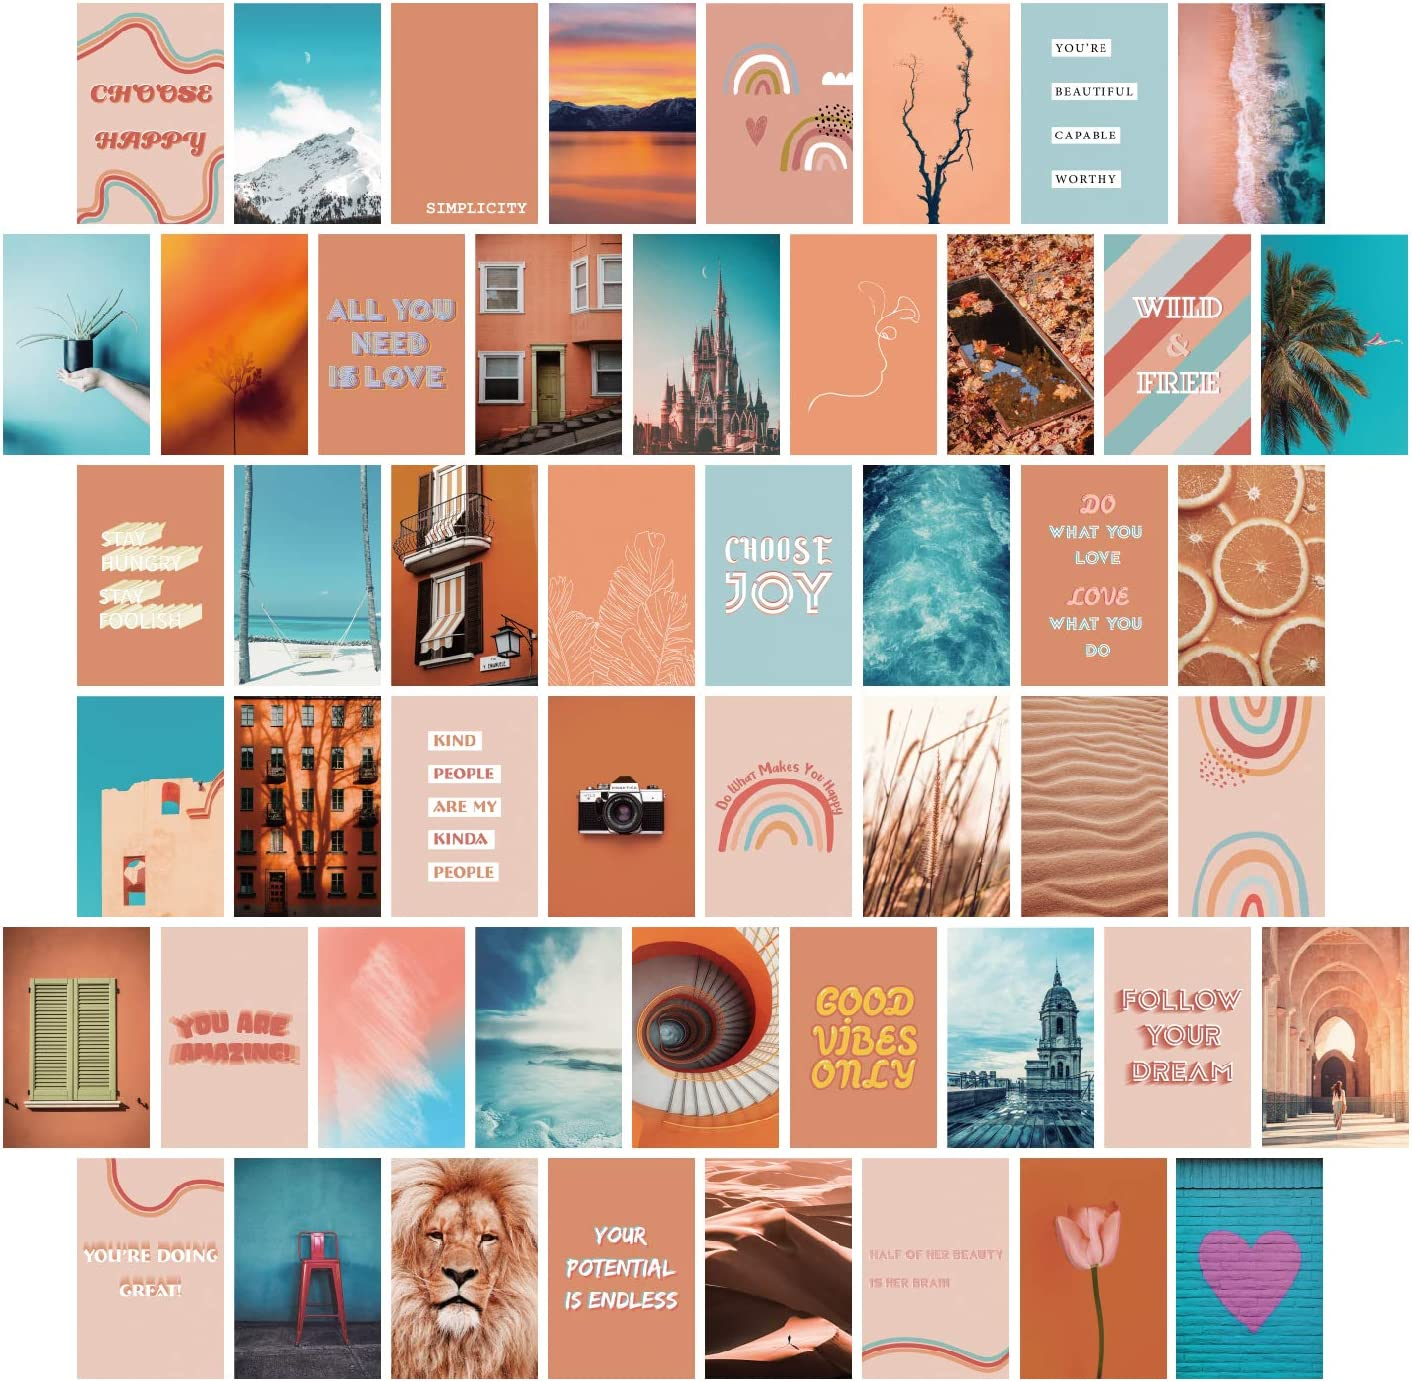 YUMKNOW Aesthetic Wall Collage Kit - 4x6 inch Set of 50, Teen Girl Room Decor for Bedroom Dorm, Motivational Wall Art, Peach Teal Blue Photo Picture Posters, Inspirational Gift for Teenage Girls Her